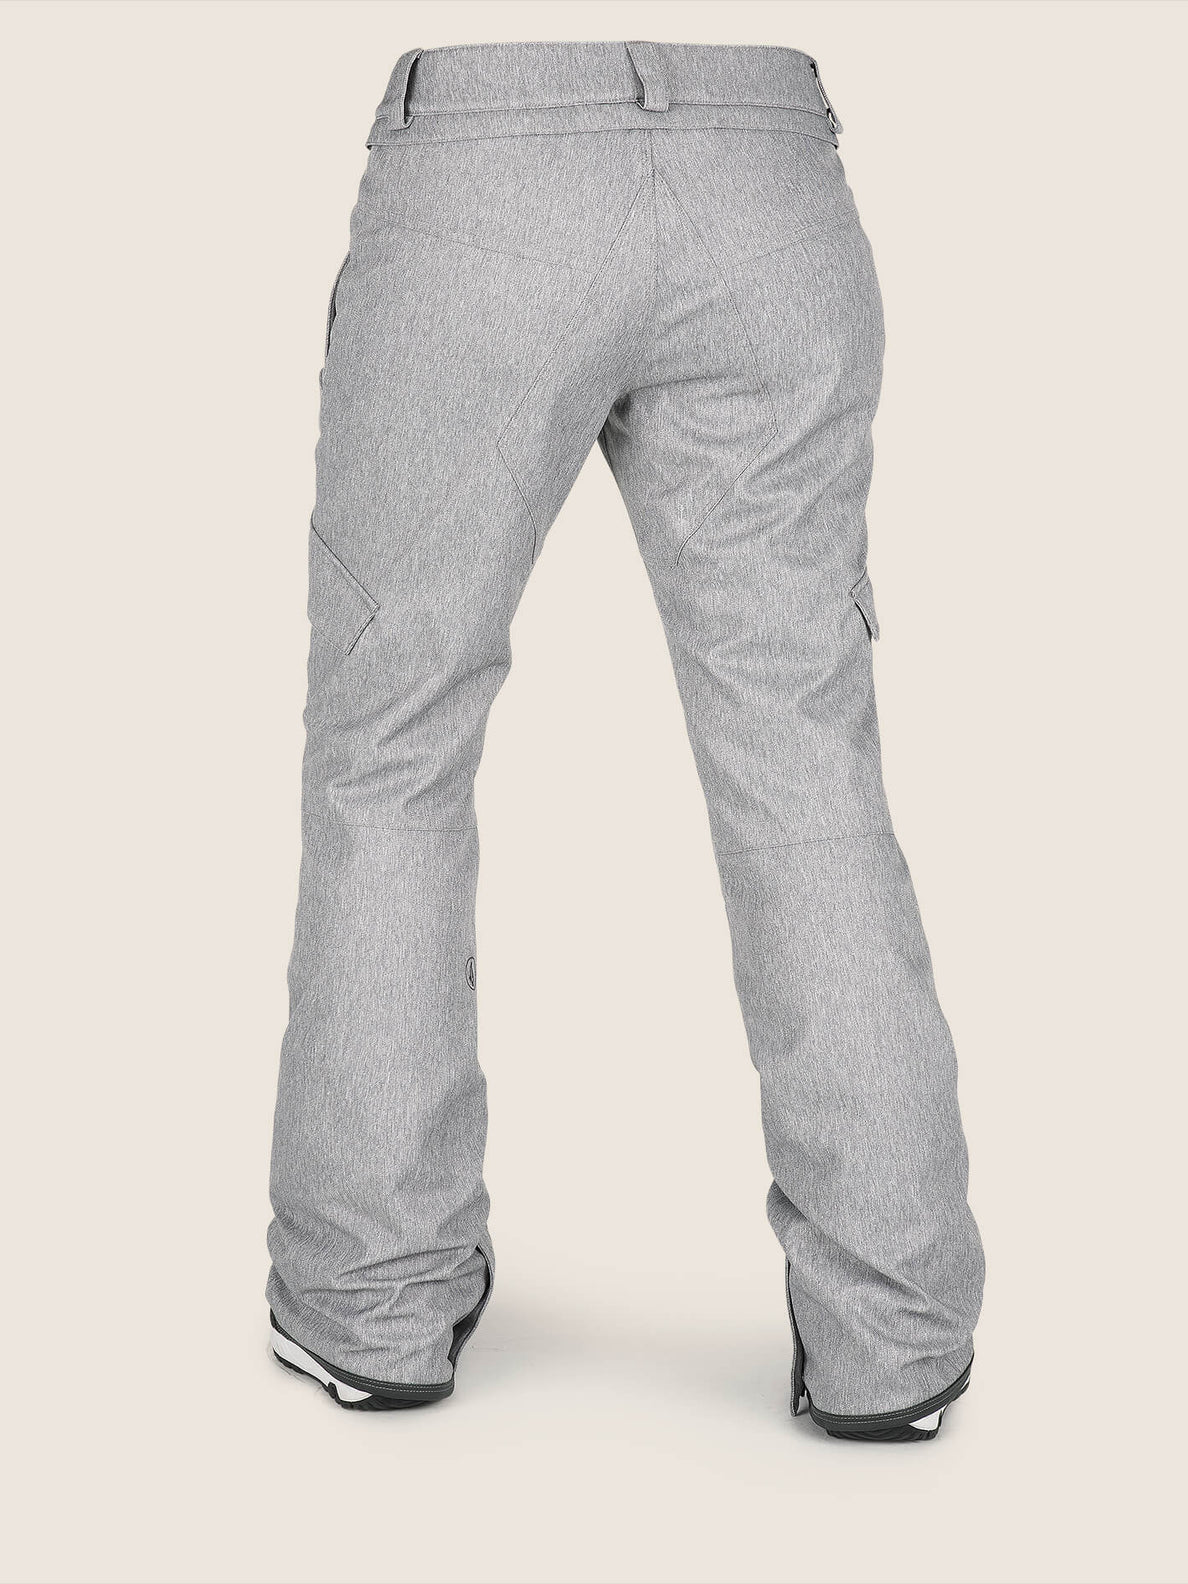 Bridger Insulated Pant In Heather Grey, Back View